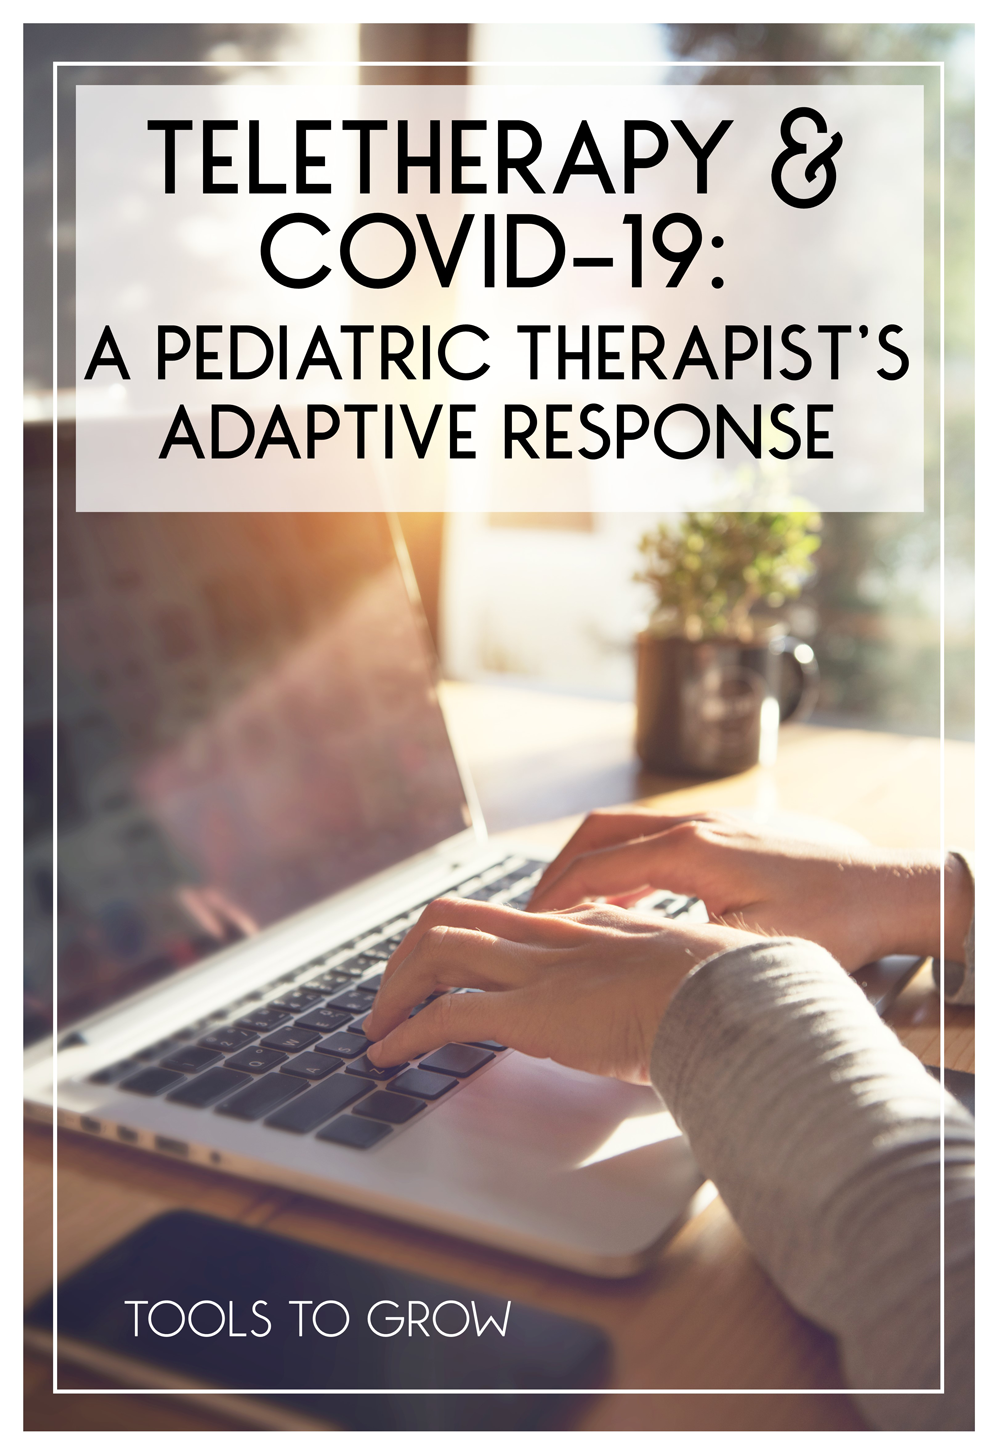 Teletherapy Pediatric Therapists